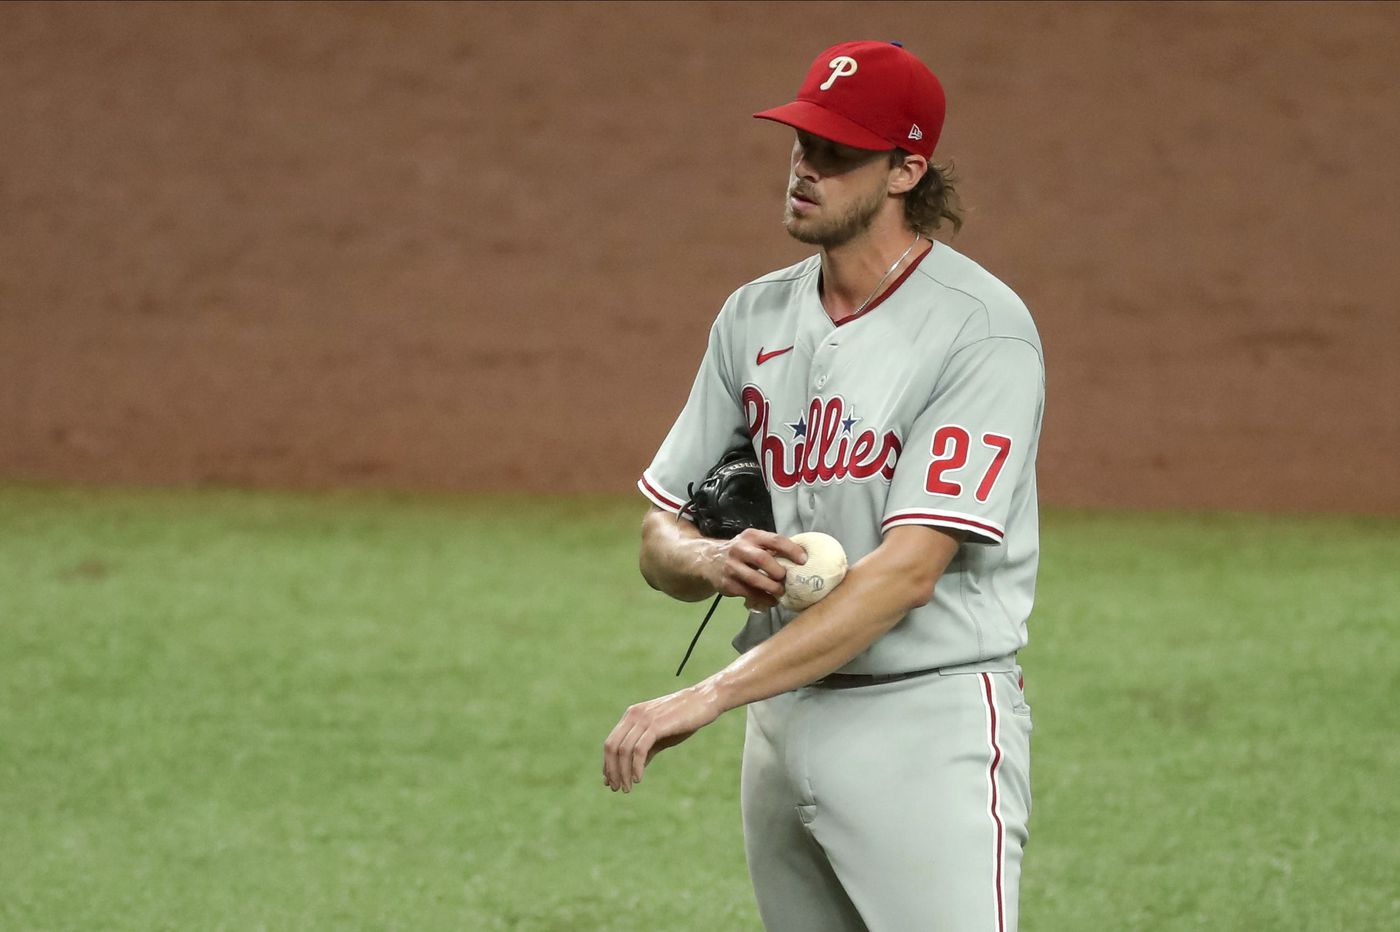 Phillies end season with 5-0 loss to Rays and miss the playoffs for ninth straight year